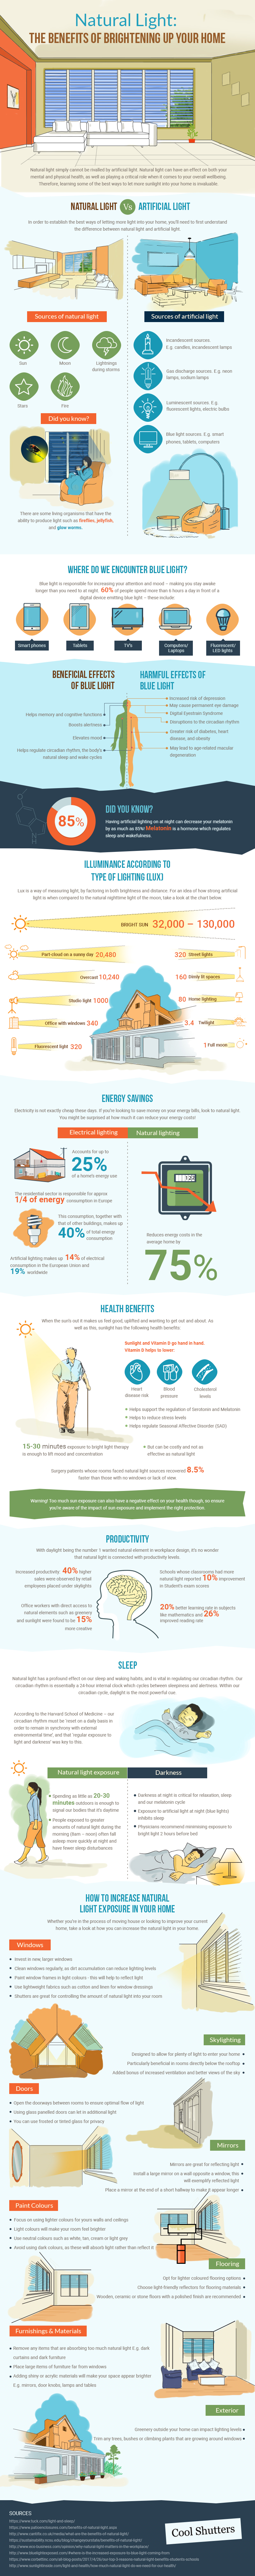 The Benefits of Natural Light Infographic